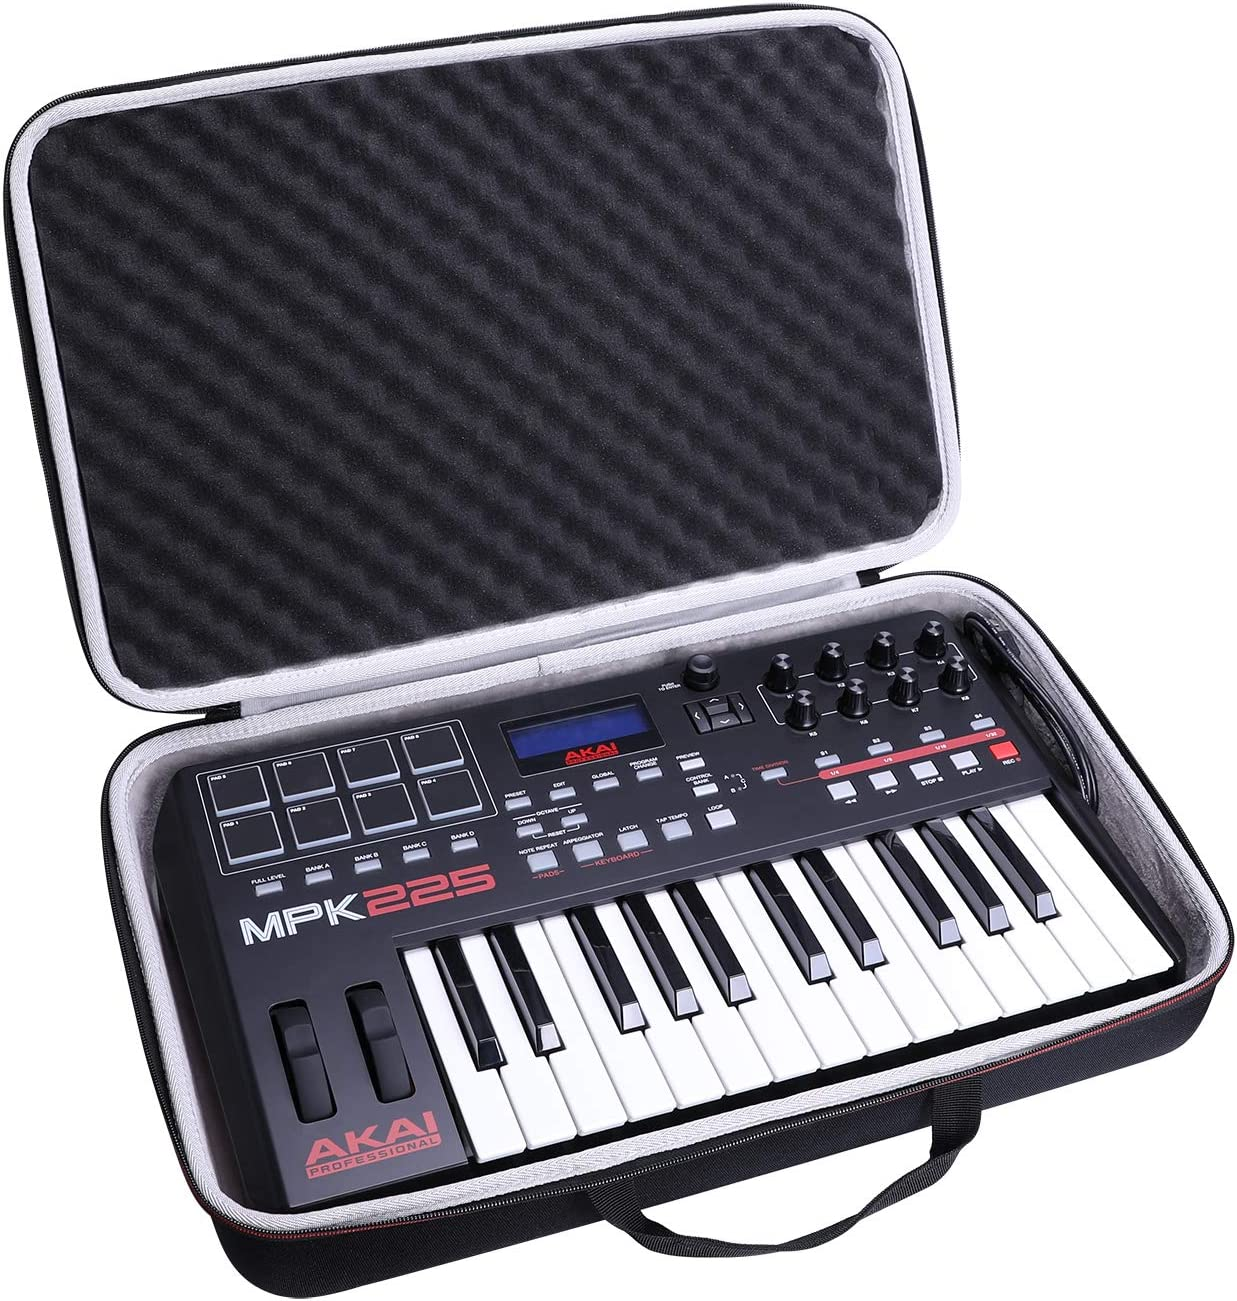 Special price LTGEM Hard Case for Akai MPK225 safety Compact 25-Key Professional Se